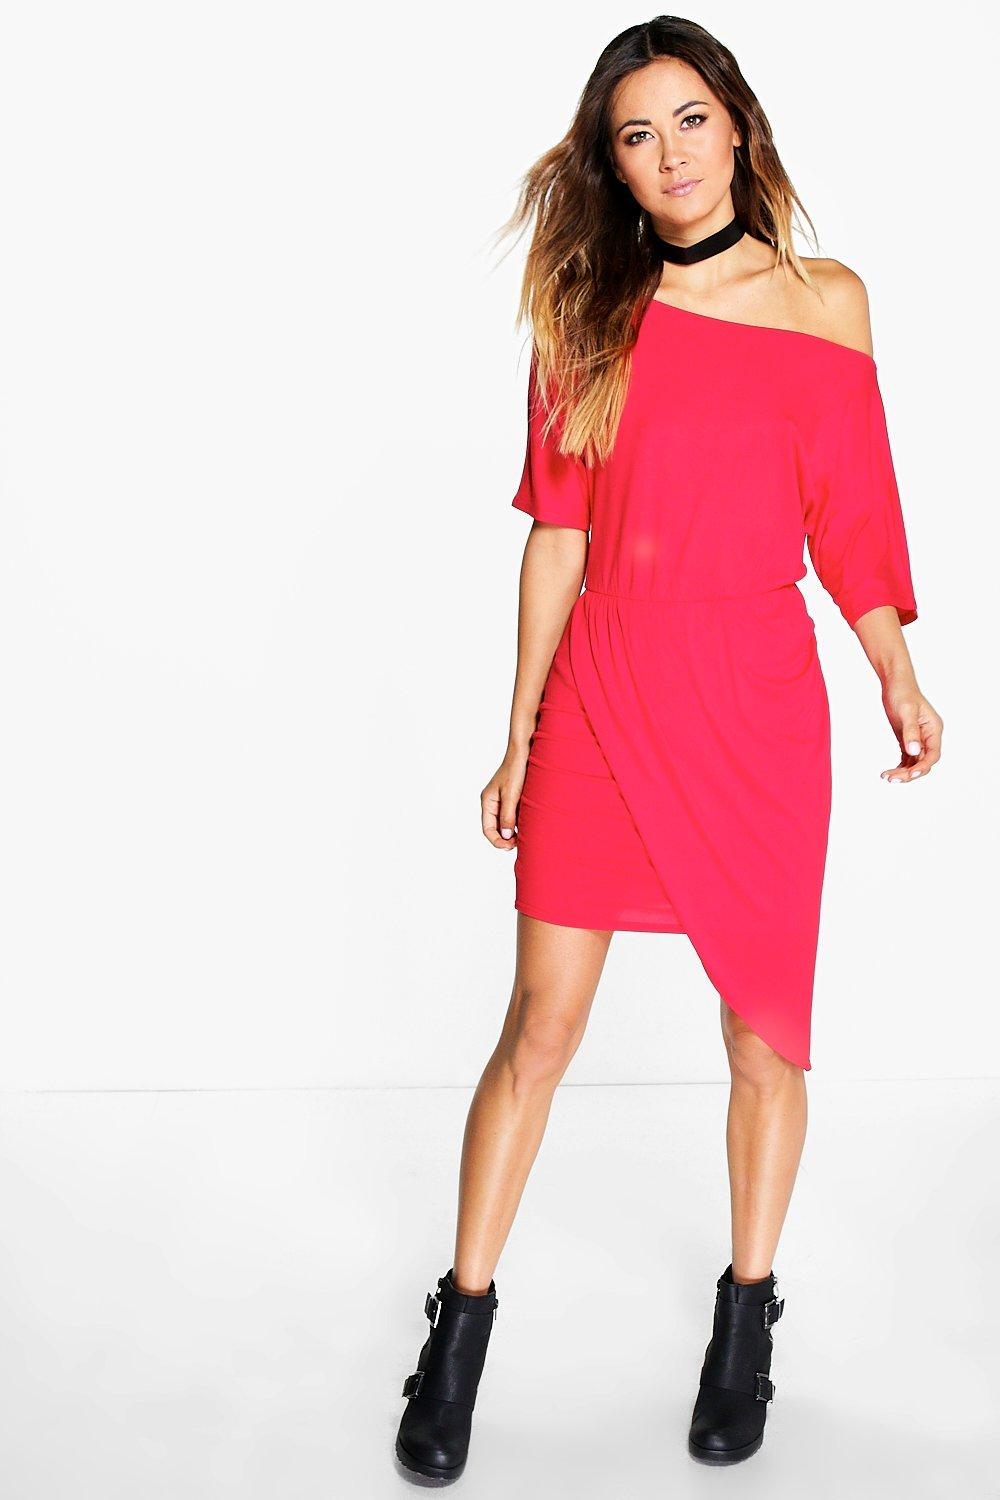 Off Shoulder Rouched Wrap Dress - poppy Review thumbnail